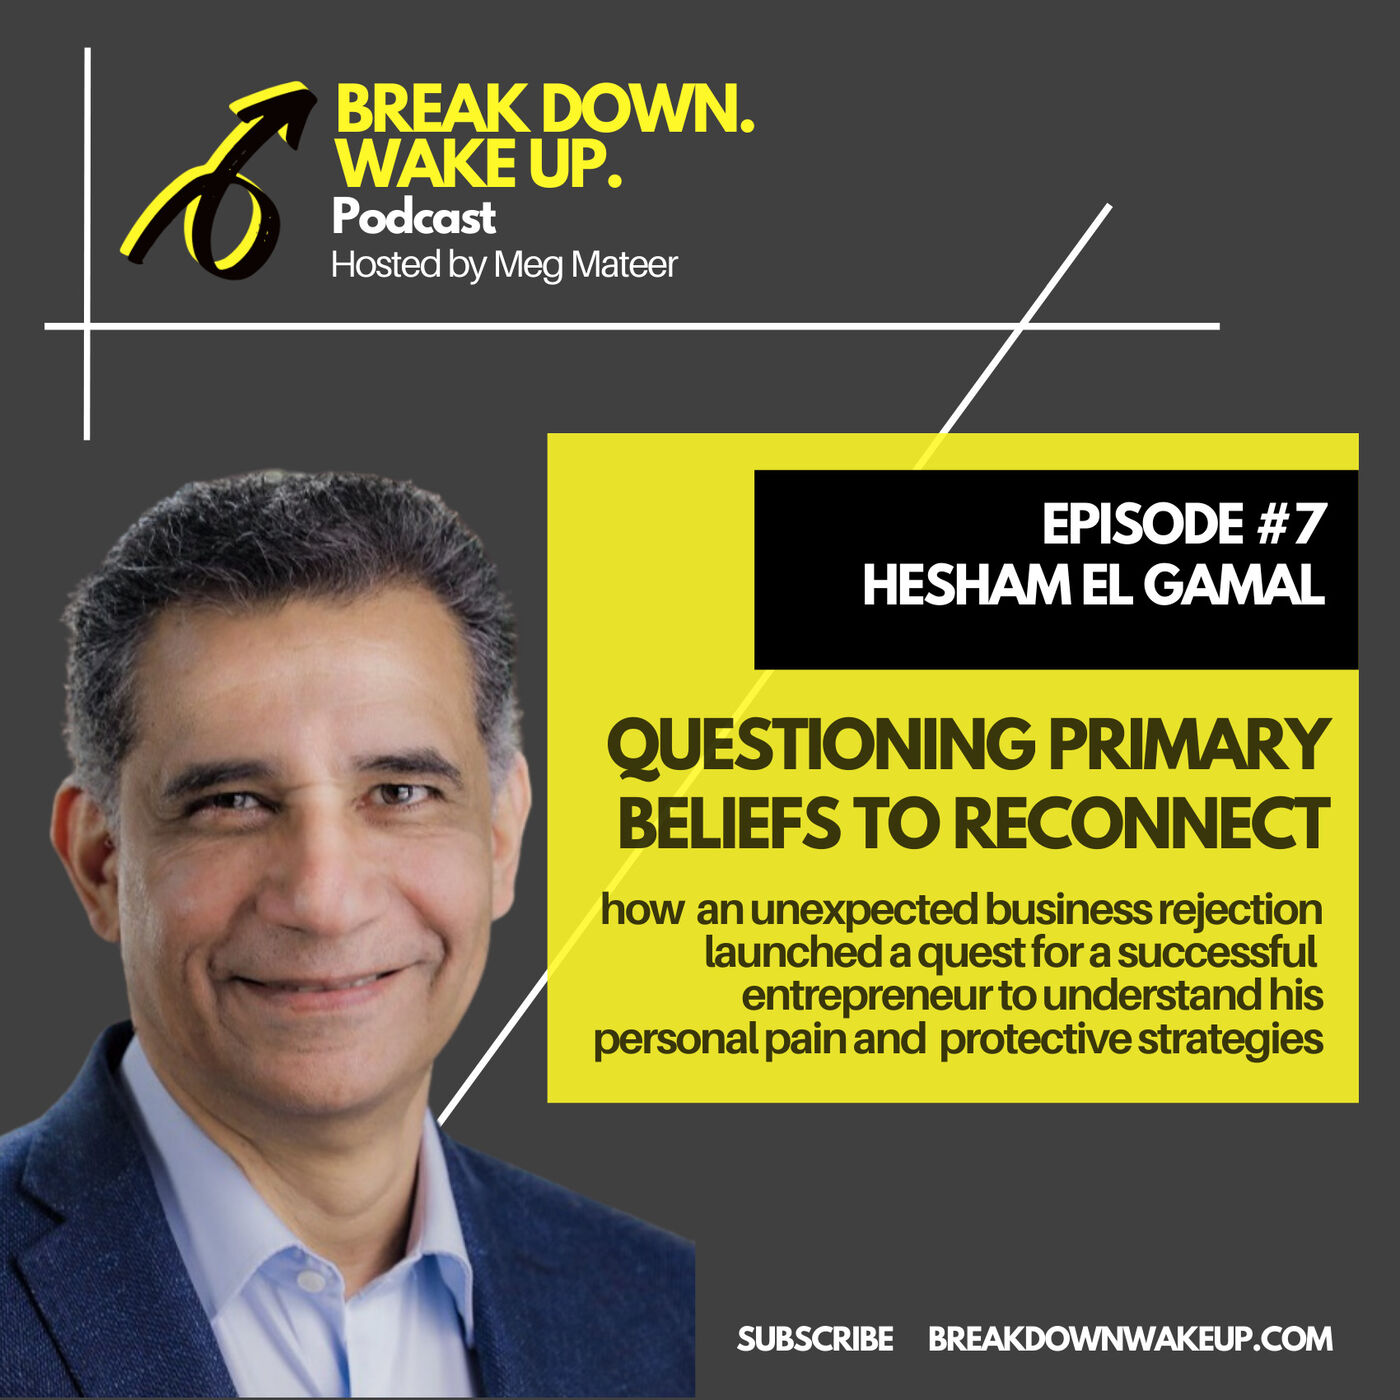 007 - Questioning primary beliefs to reconnect with Hesham El Gamal